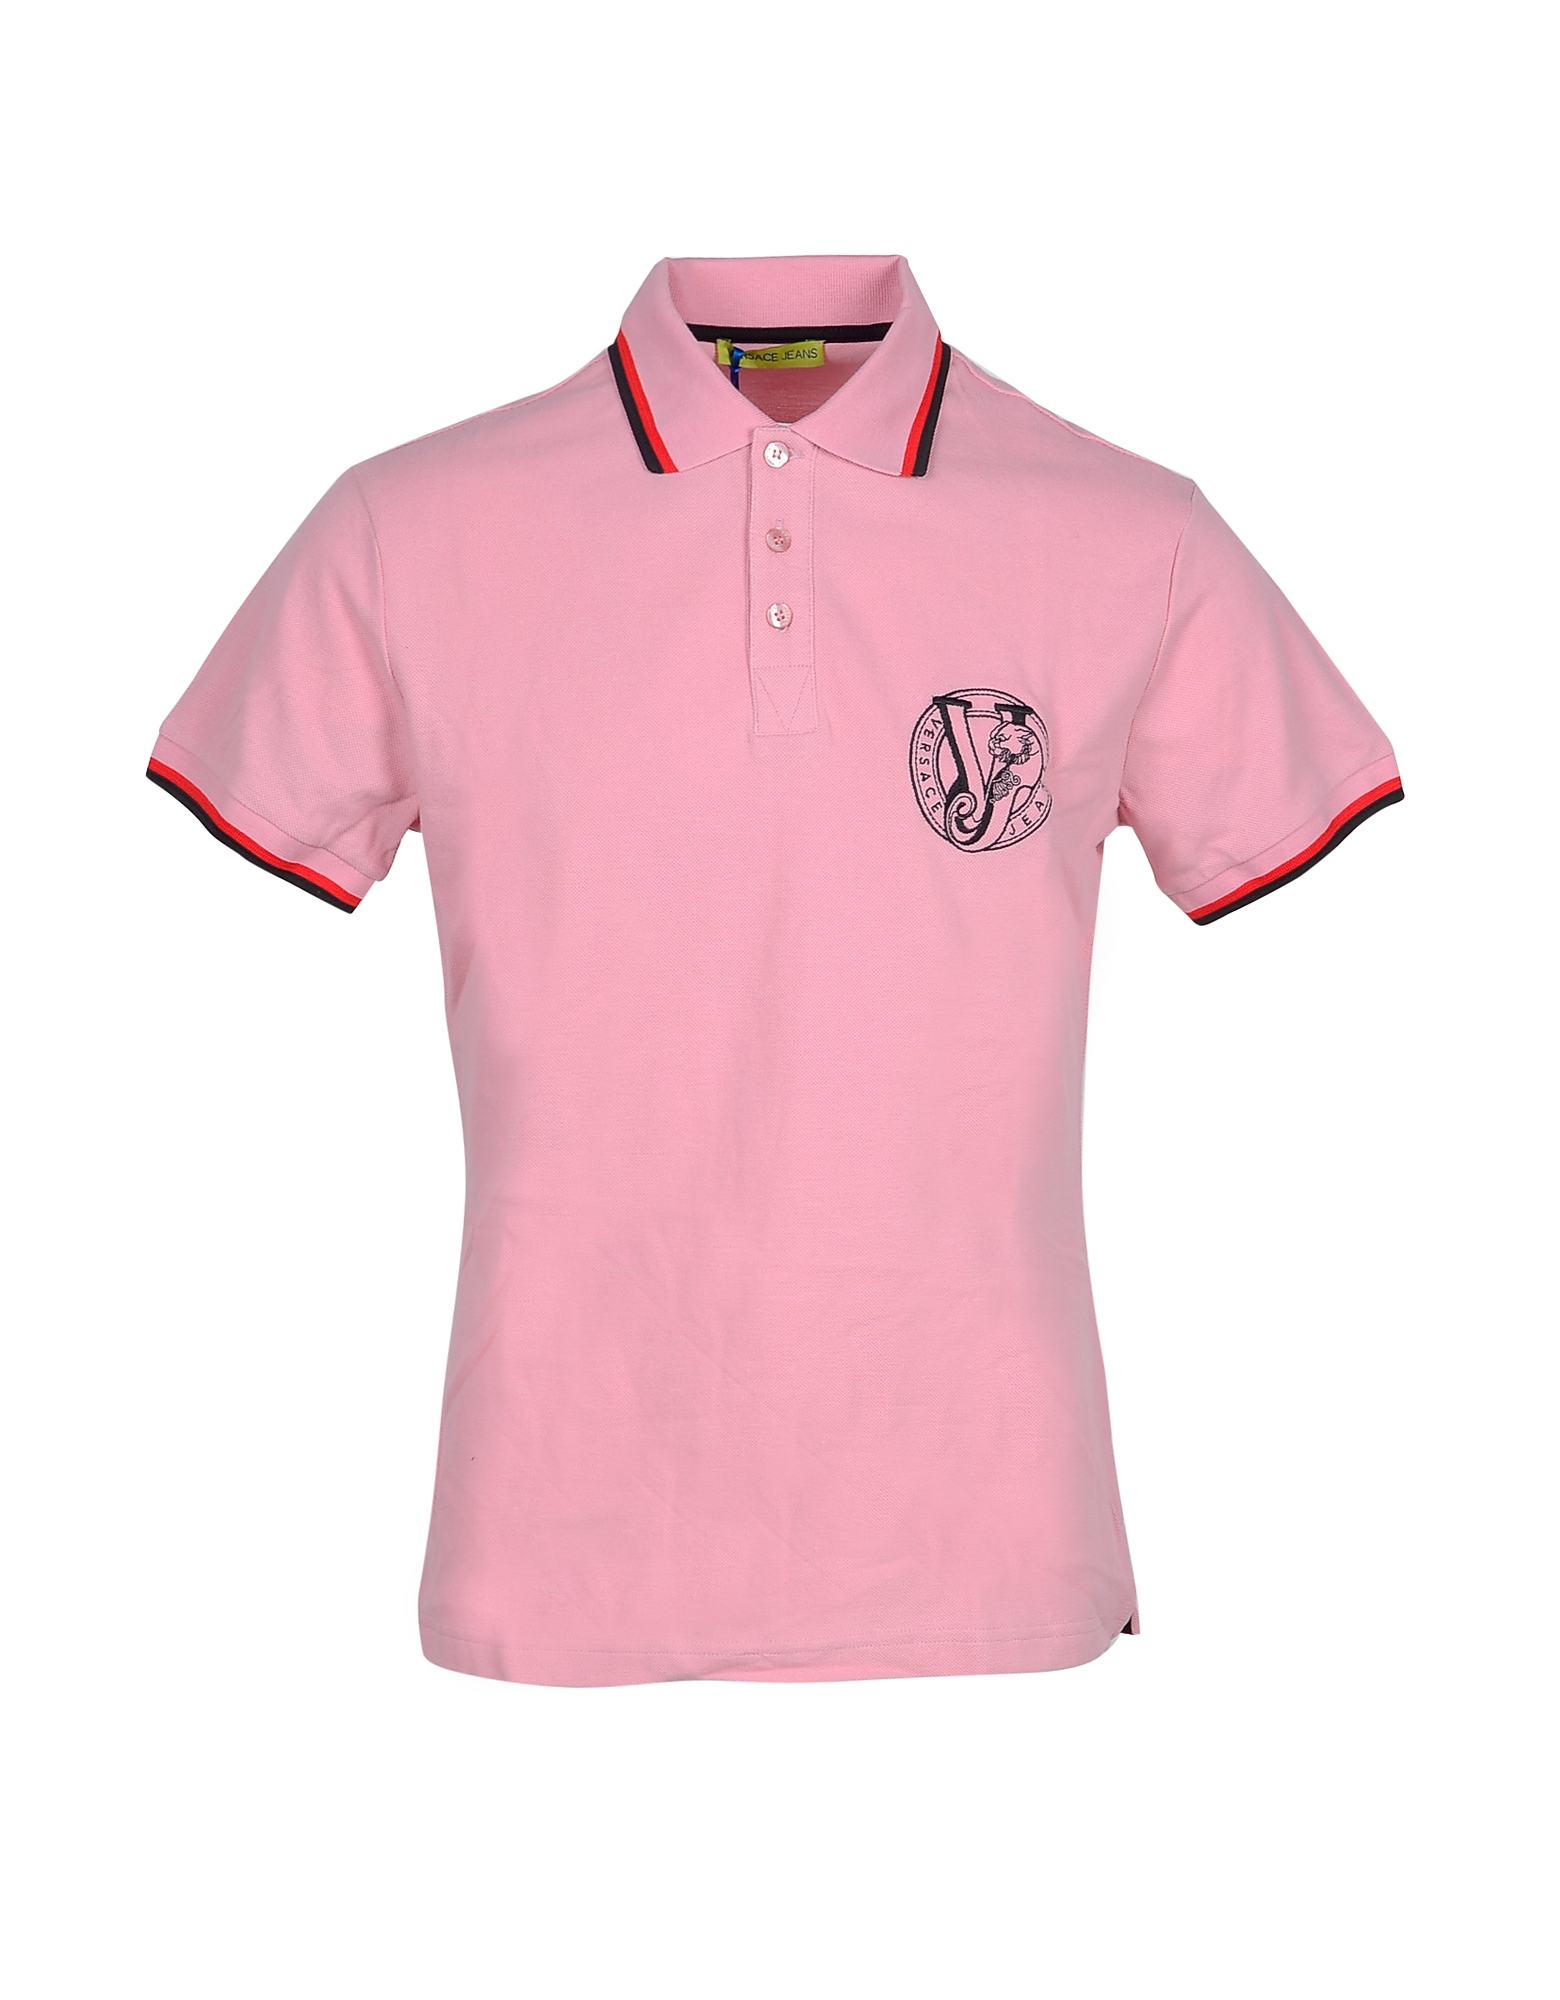 Versace Jeans Designer Polo Shirts, Pink Cotton Men's Polo Shirt